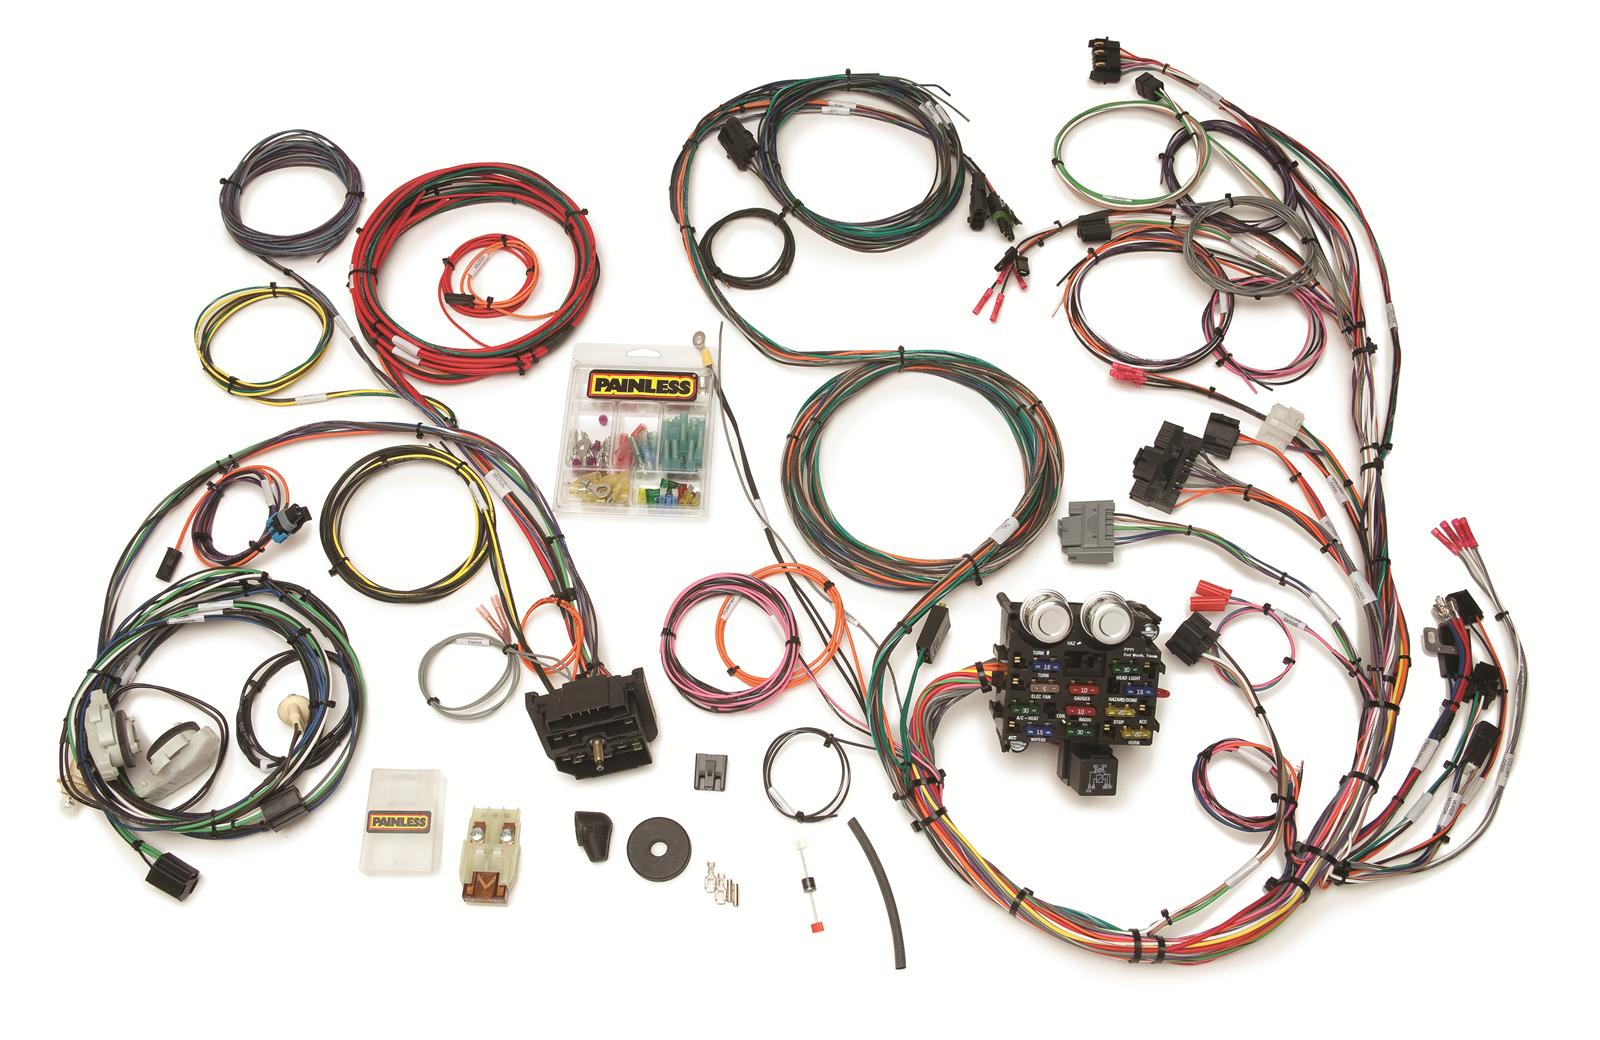 Painless Performance 23 Circuit Direct Fit Jeep Yj Harnesses 10111 Wiring Harness Connectors Free Shipping On Orders Over 99 At Summit Racing